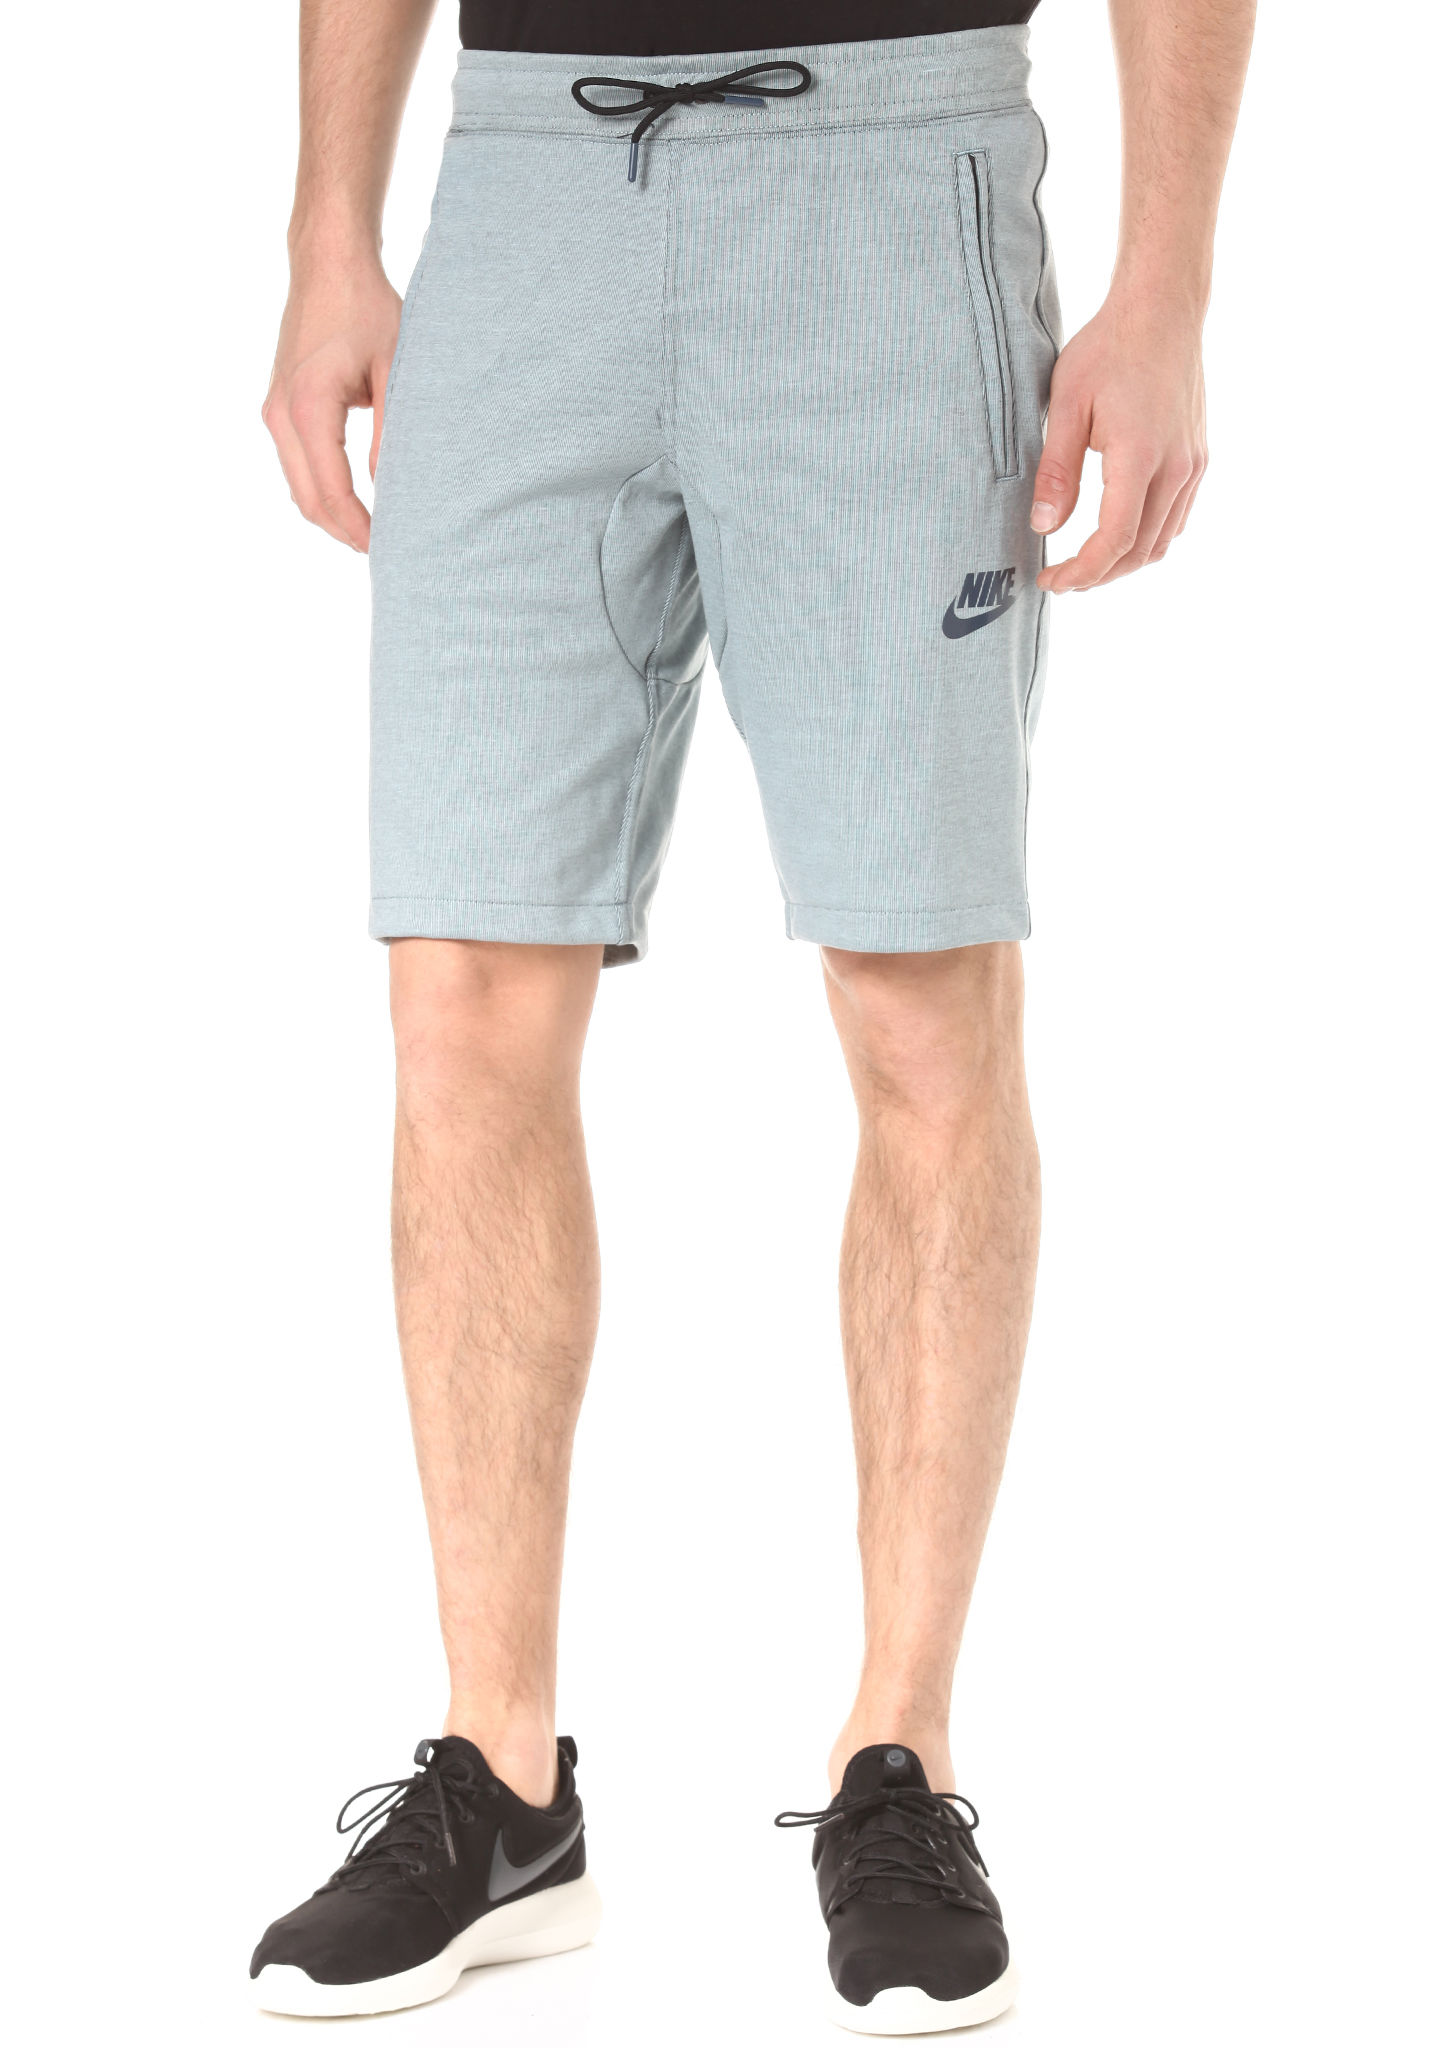 NIKE SPORTSWEAR AV15 Fleece - Short pour Homme - Bleu - Planet Sports b40e0a28a7e